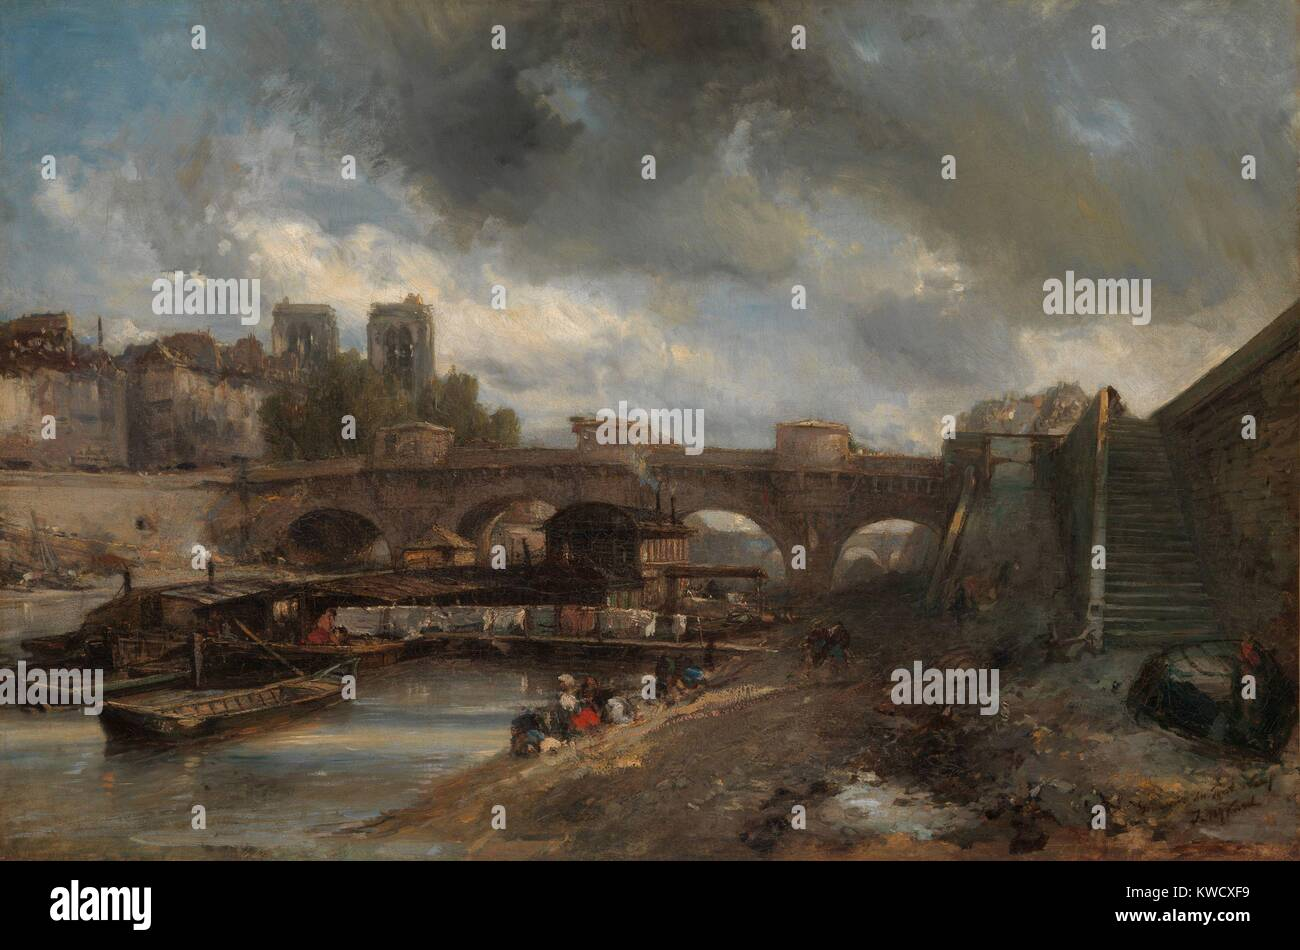 The Pont Neuf, by Johan Barthold Jongkind, 1849-50, Dutch realist painting, oil on canvas. His painterly open brushwork, - Stock Image